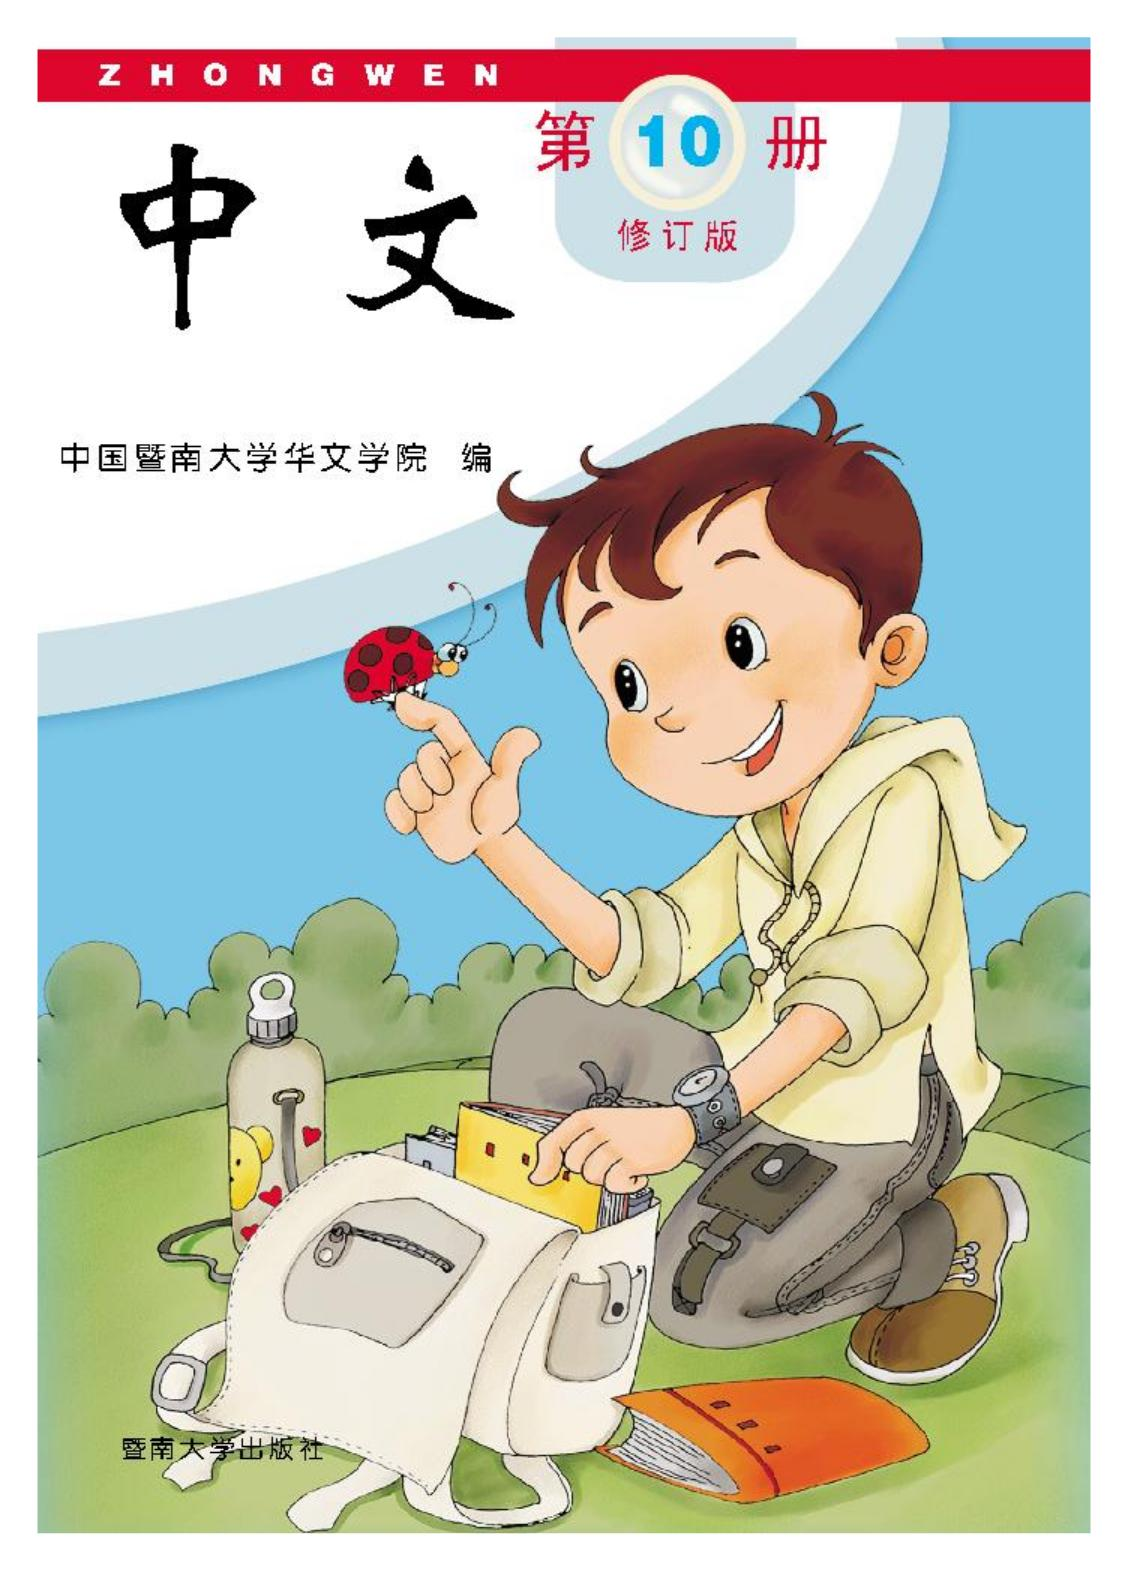 front cover of the textbook ZhongWen Revised Version Level 10